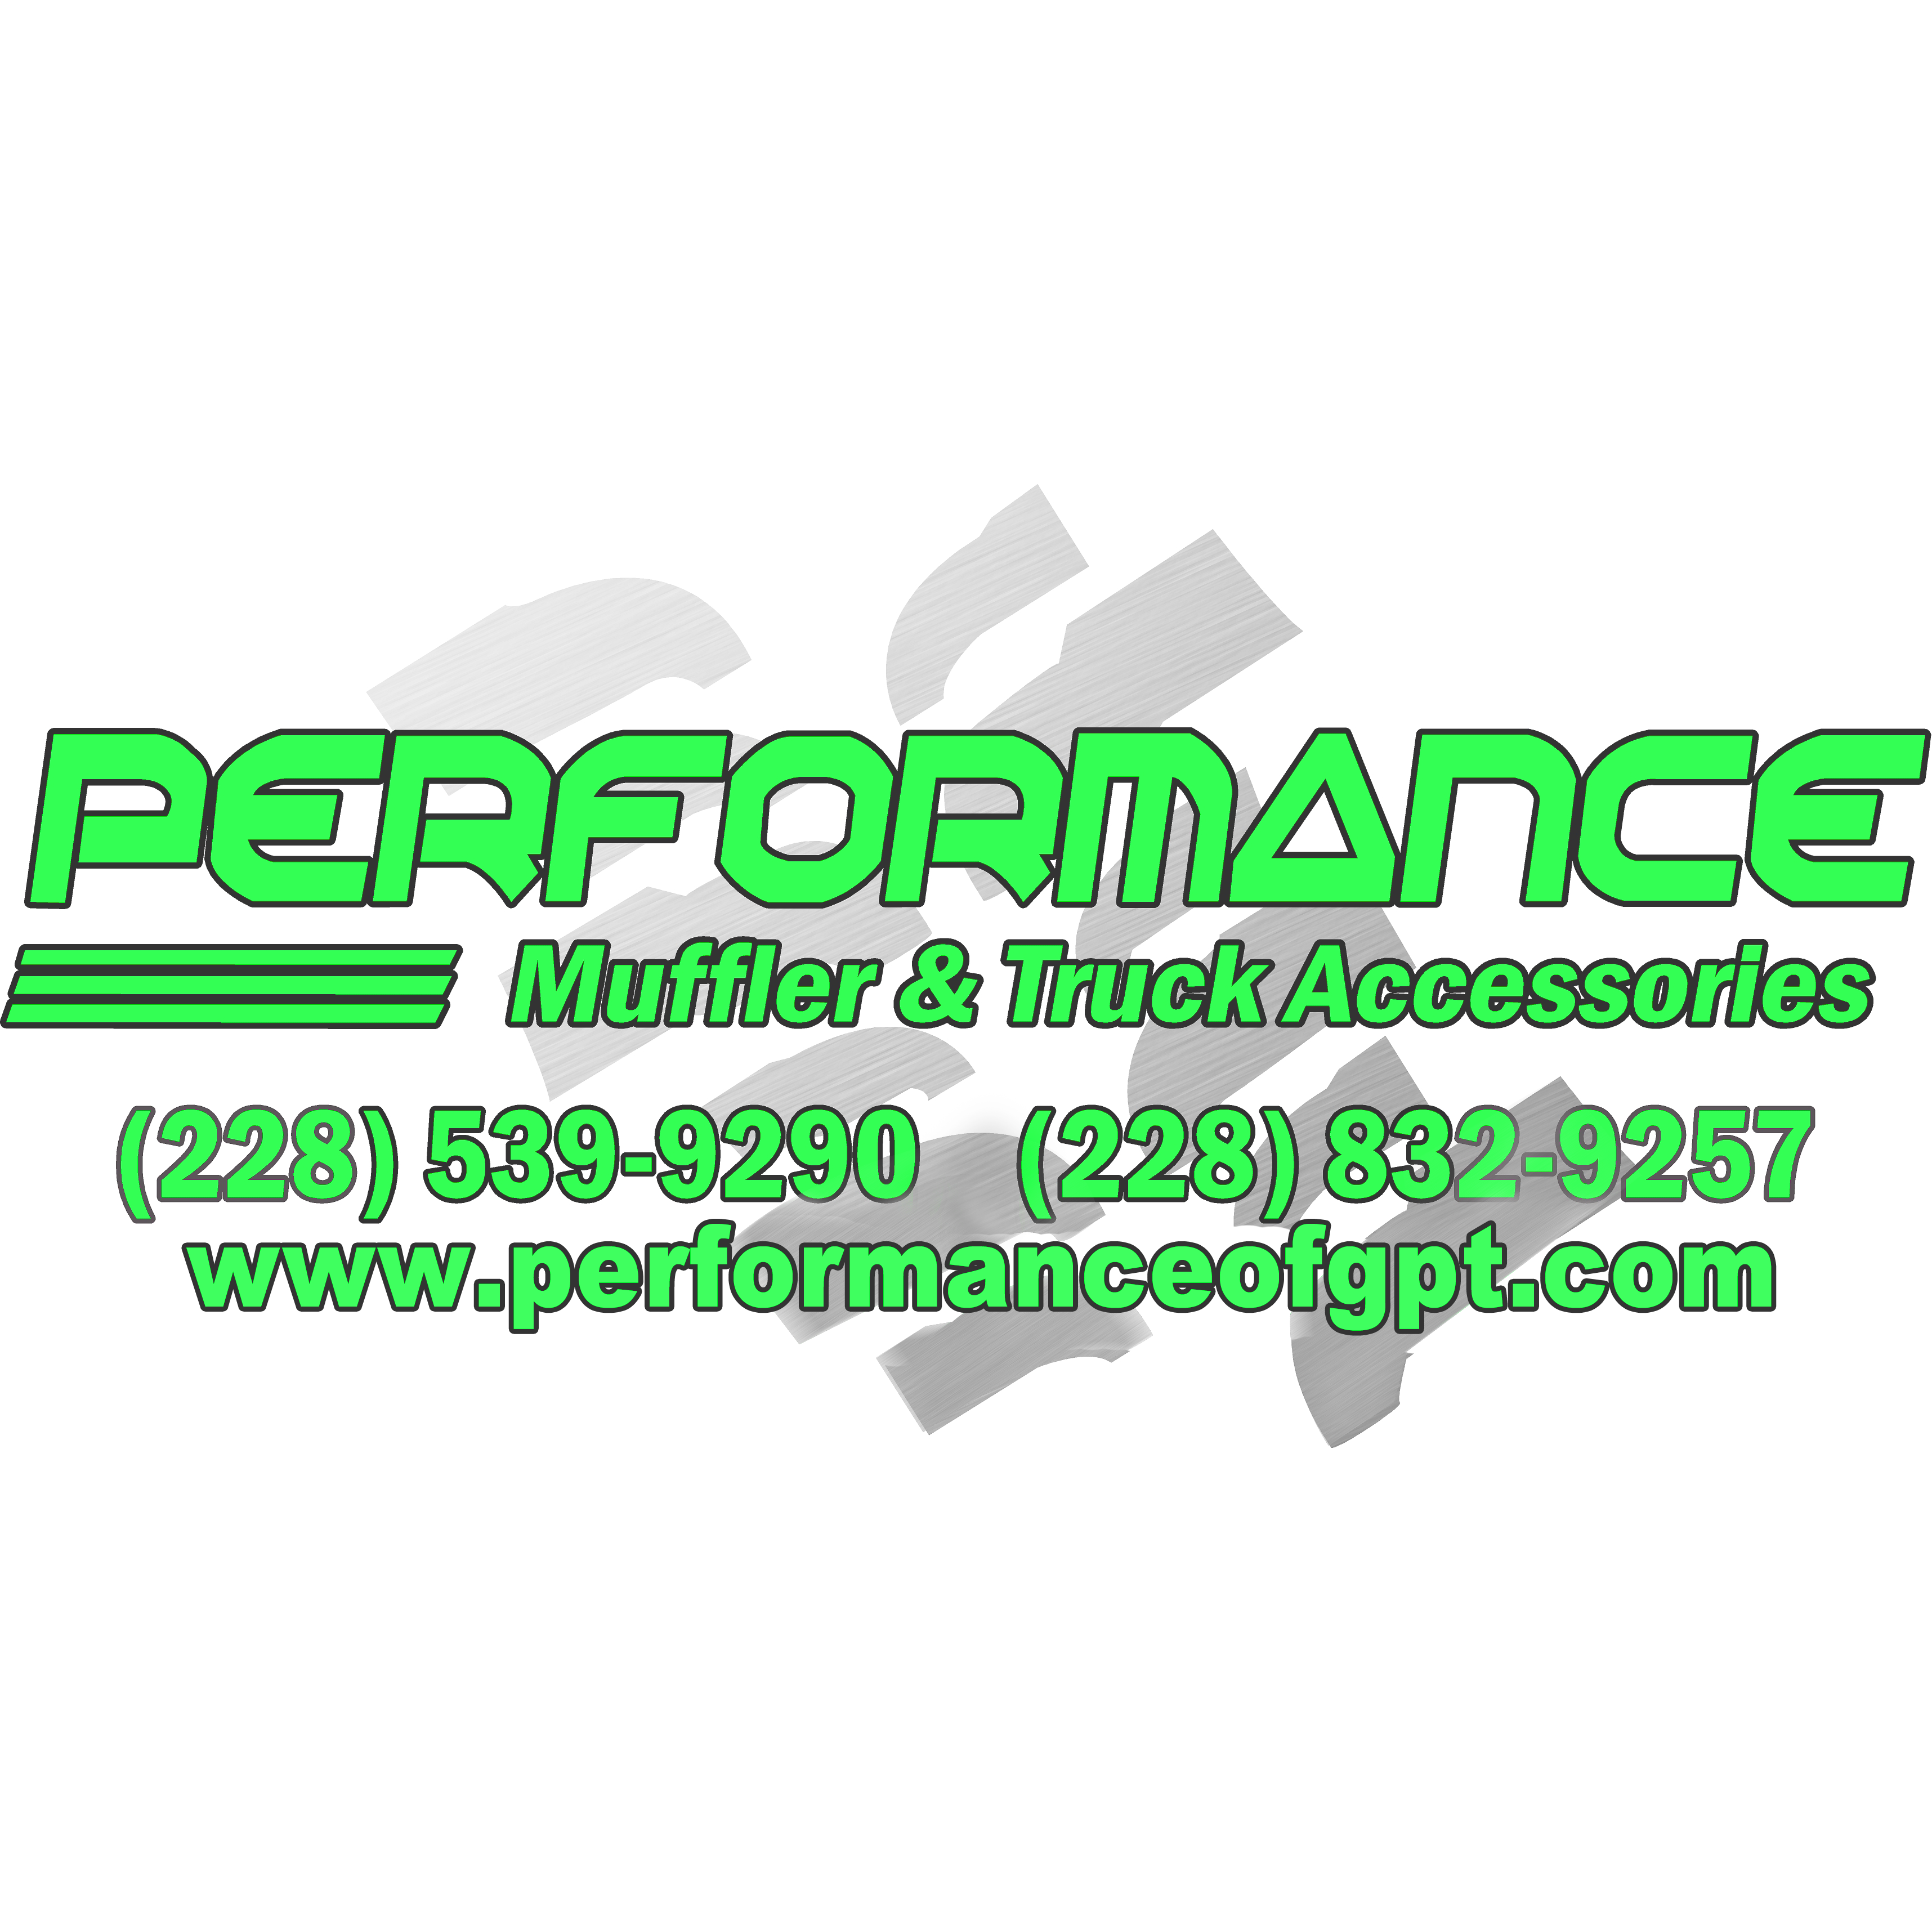 Performance Muffler & Truck Accessories